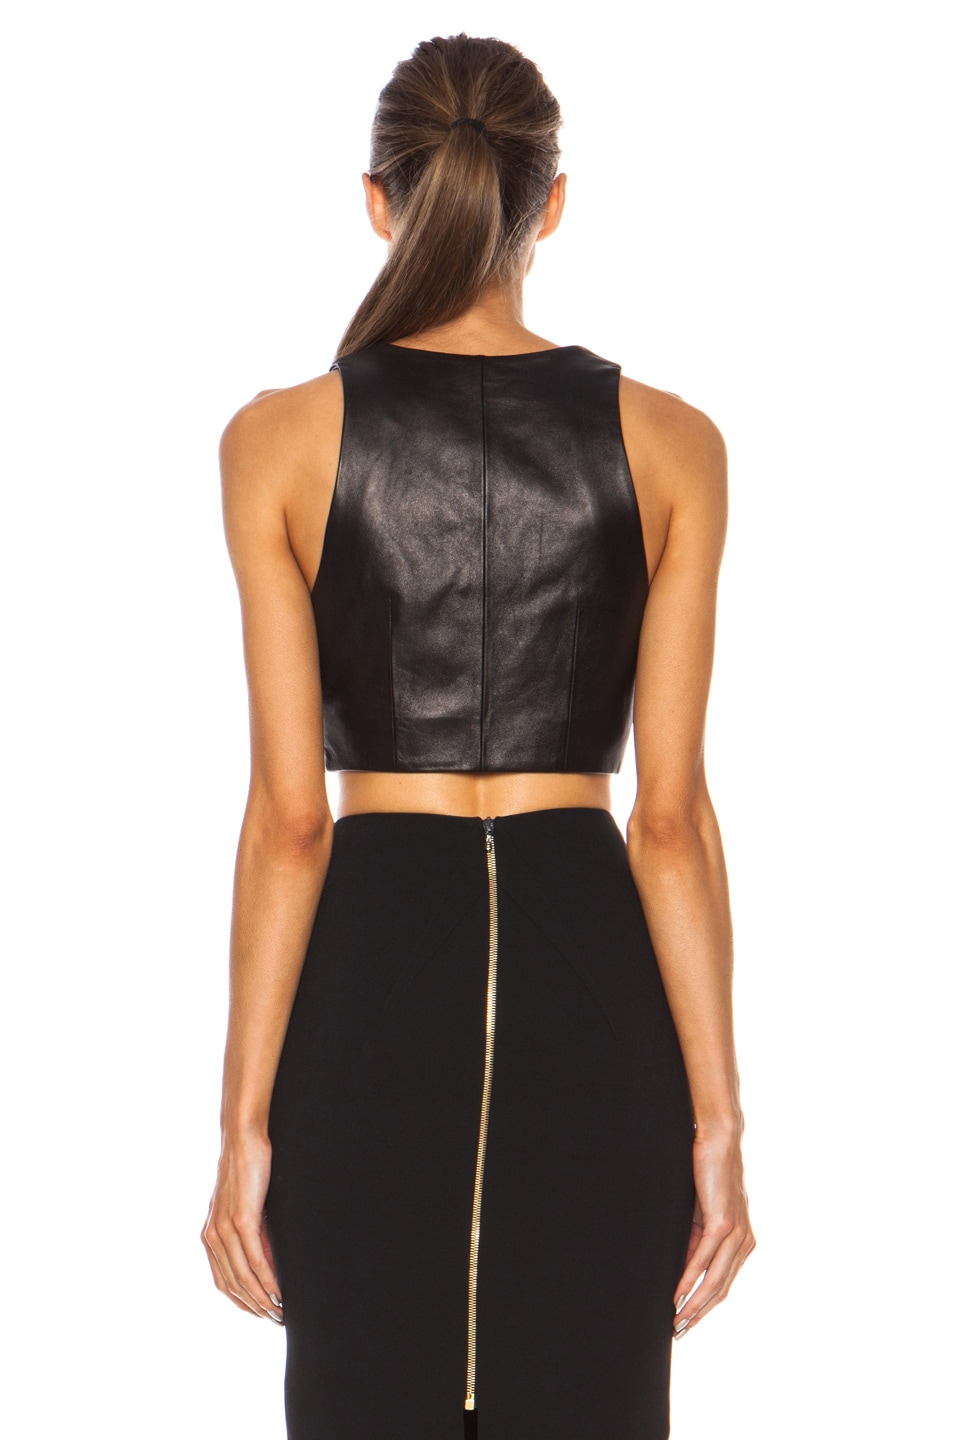 f65e3306240bd4 Image 4 of T by Alexander Wang Leather Wrap Crop Top in Black